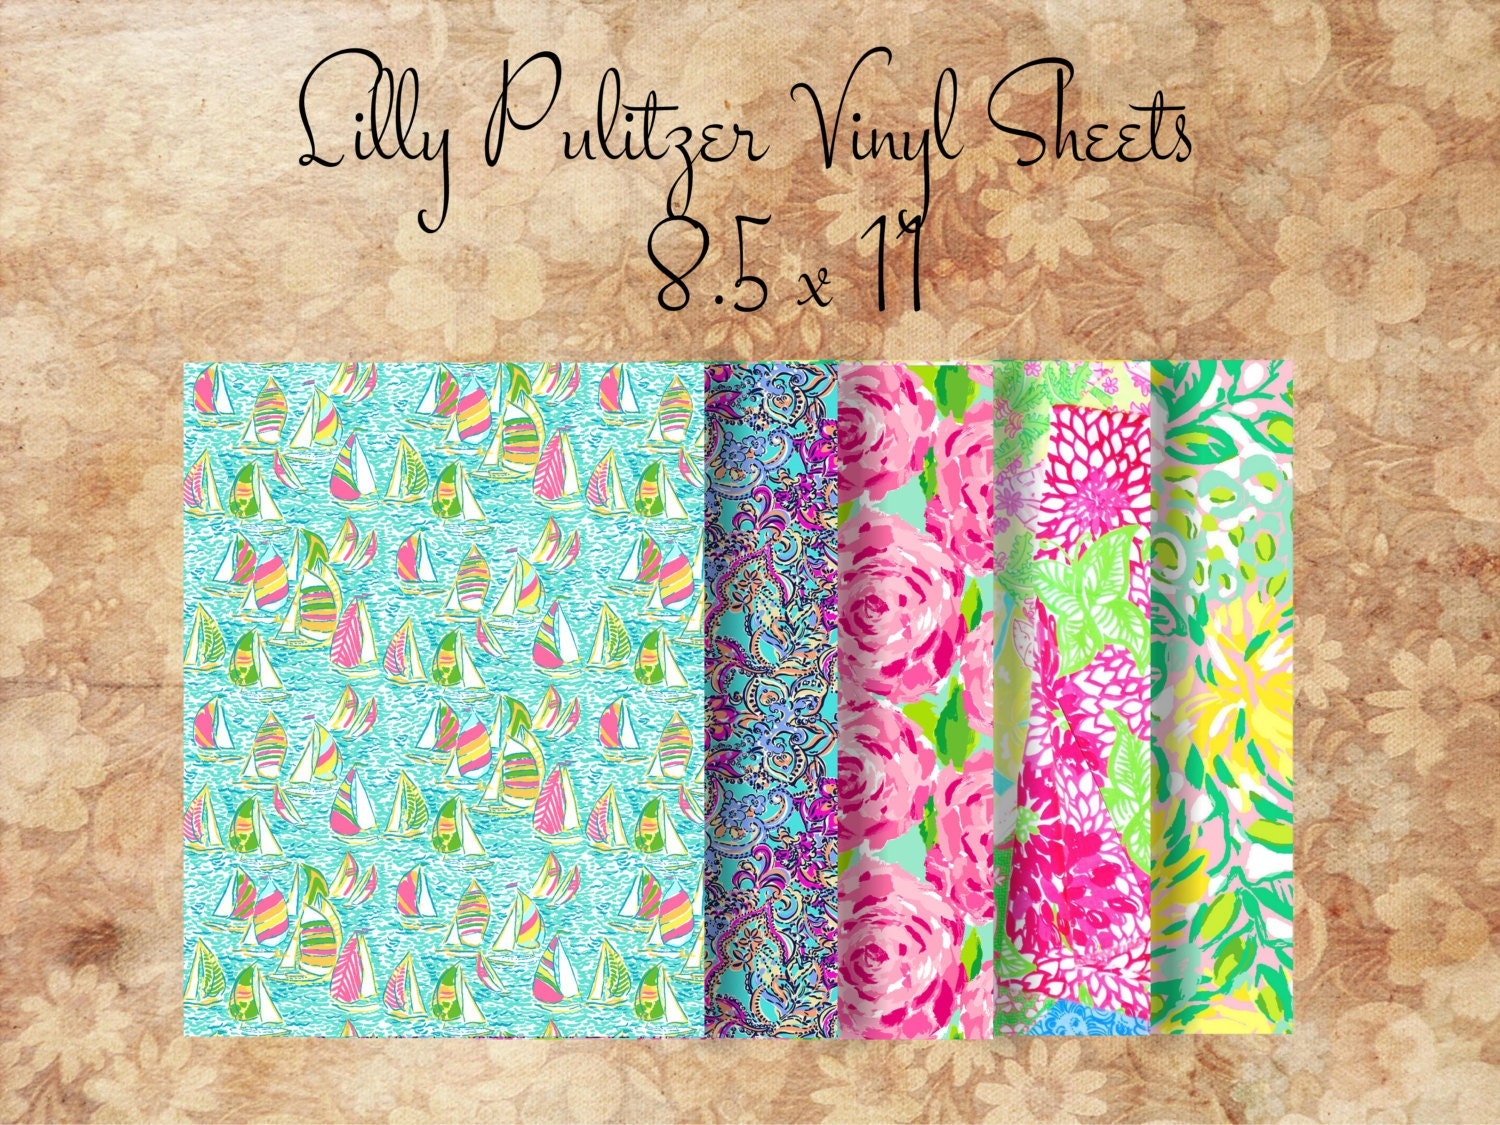 Lilly Pulitzer Vinyl Sheets 8 5 X 11 By Southernideology